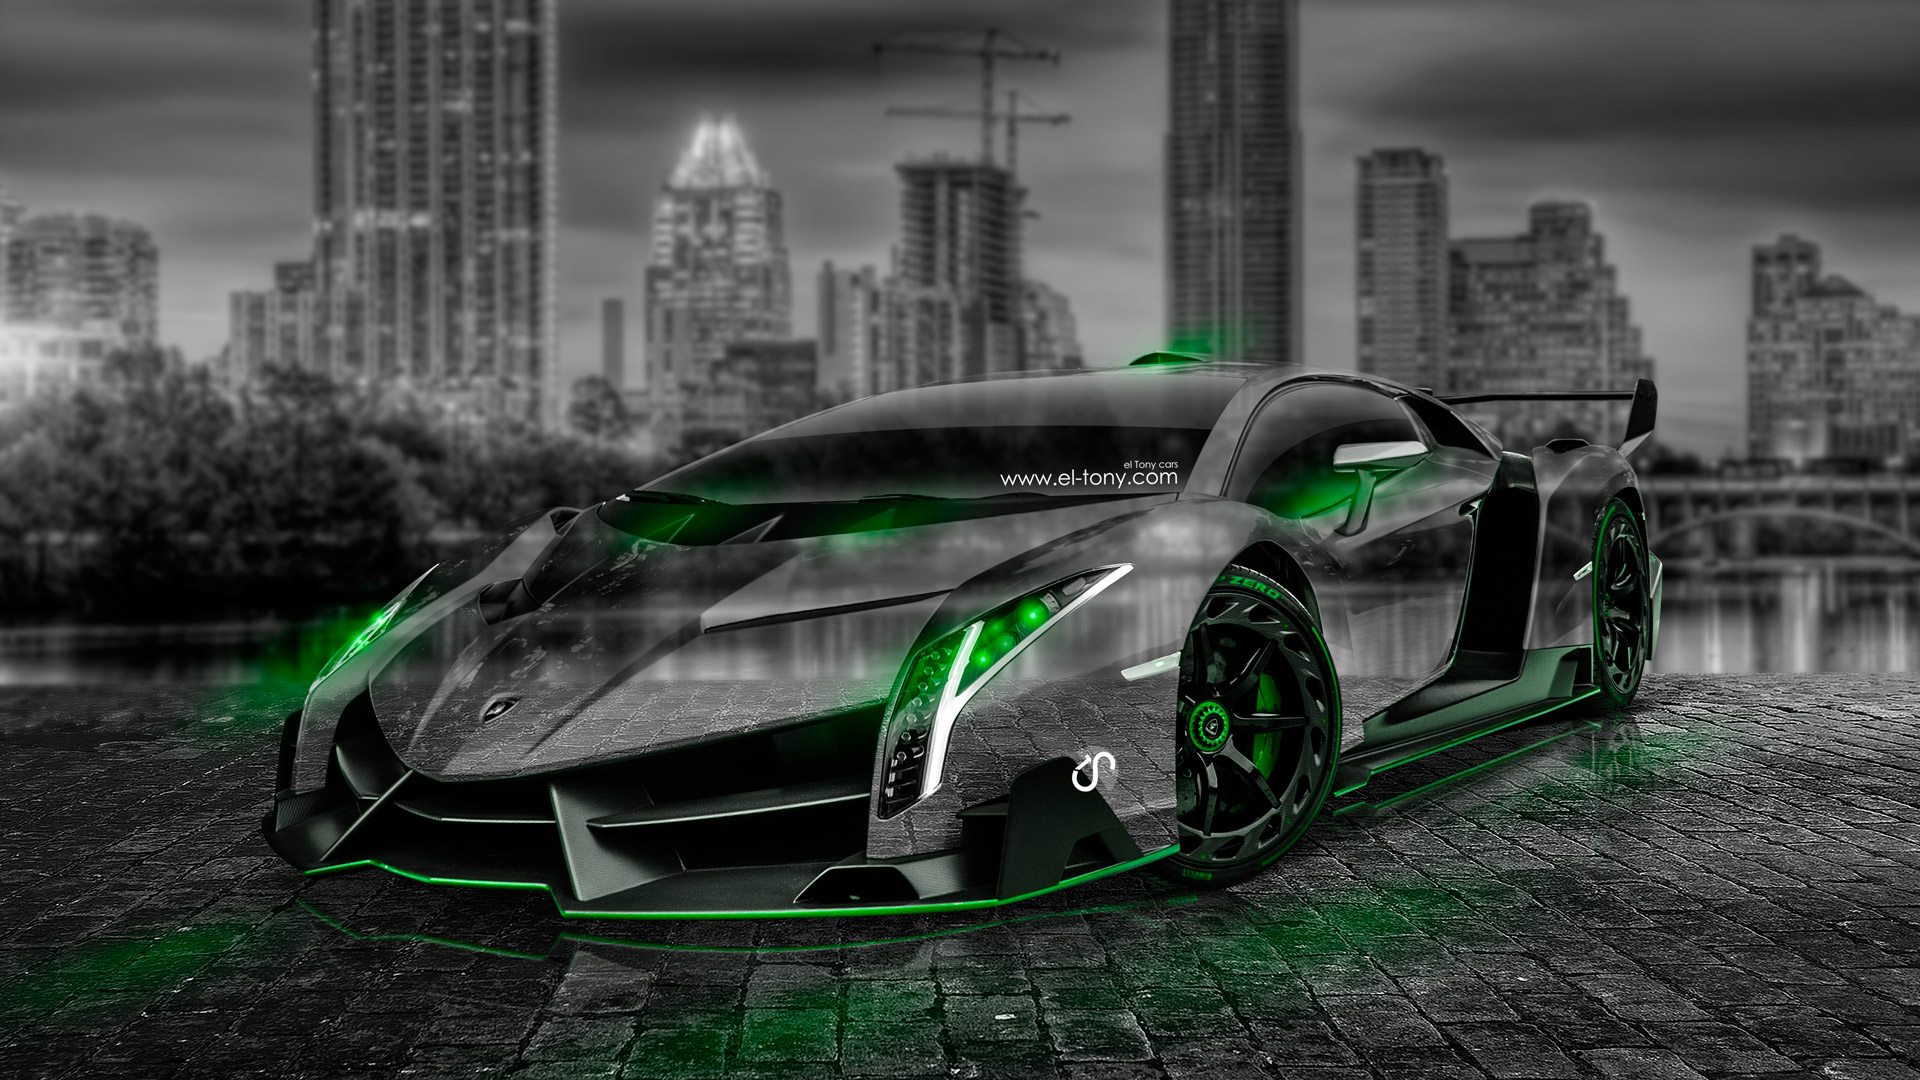 Marvelous ... Lamborghini Lamborghini Veneno Roadster HD Wallpapers Backgrounds  1920x1080 On Lamborghini Elemento, Lamborghini Theme, Lamborghini Gallardo  ...